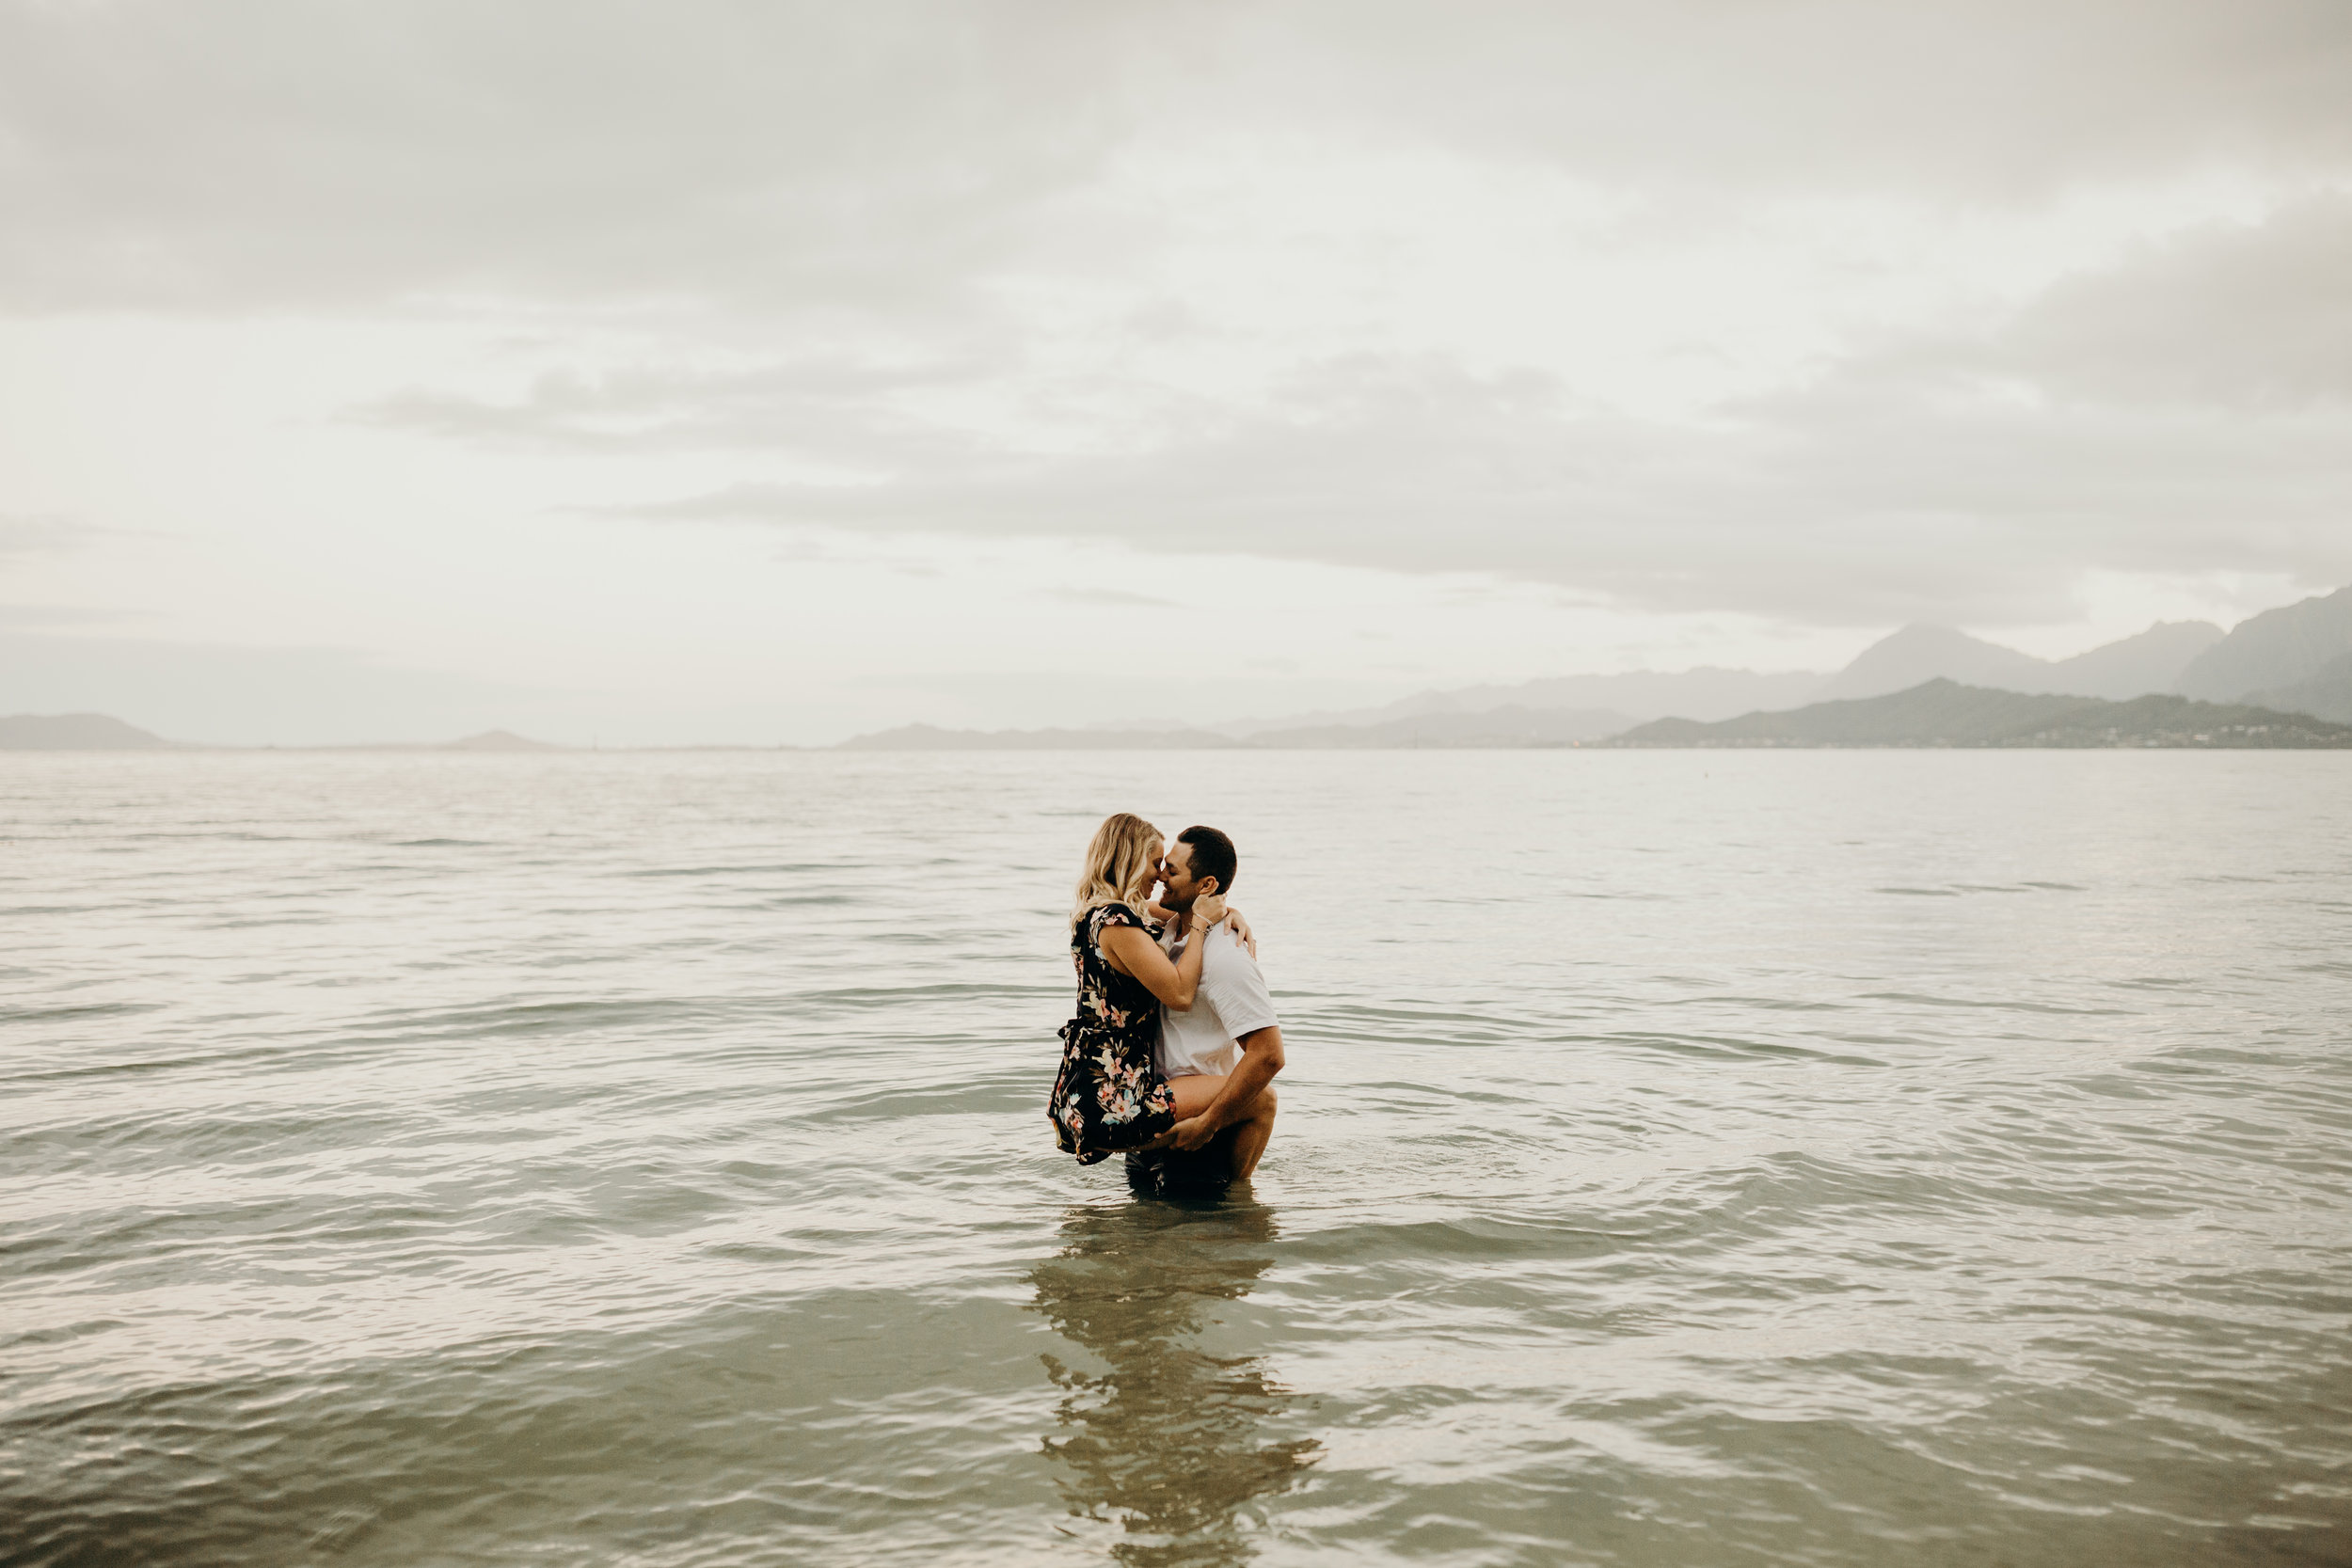 hawaii-engagement-photographer-keani-bakula-kualoa-ranch-16.jpg